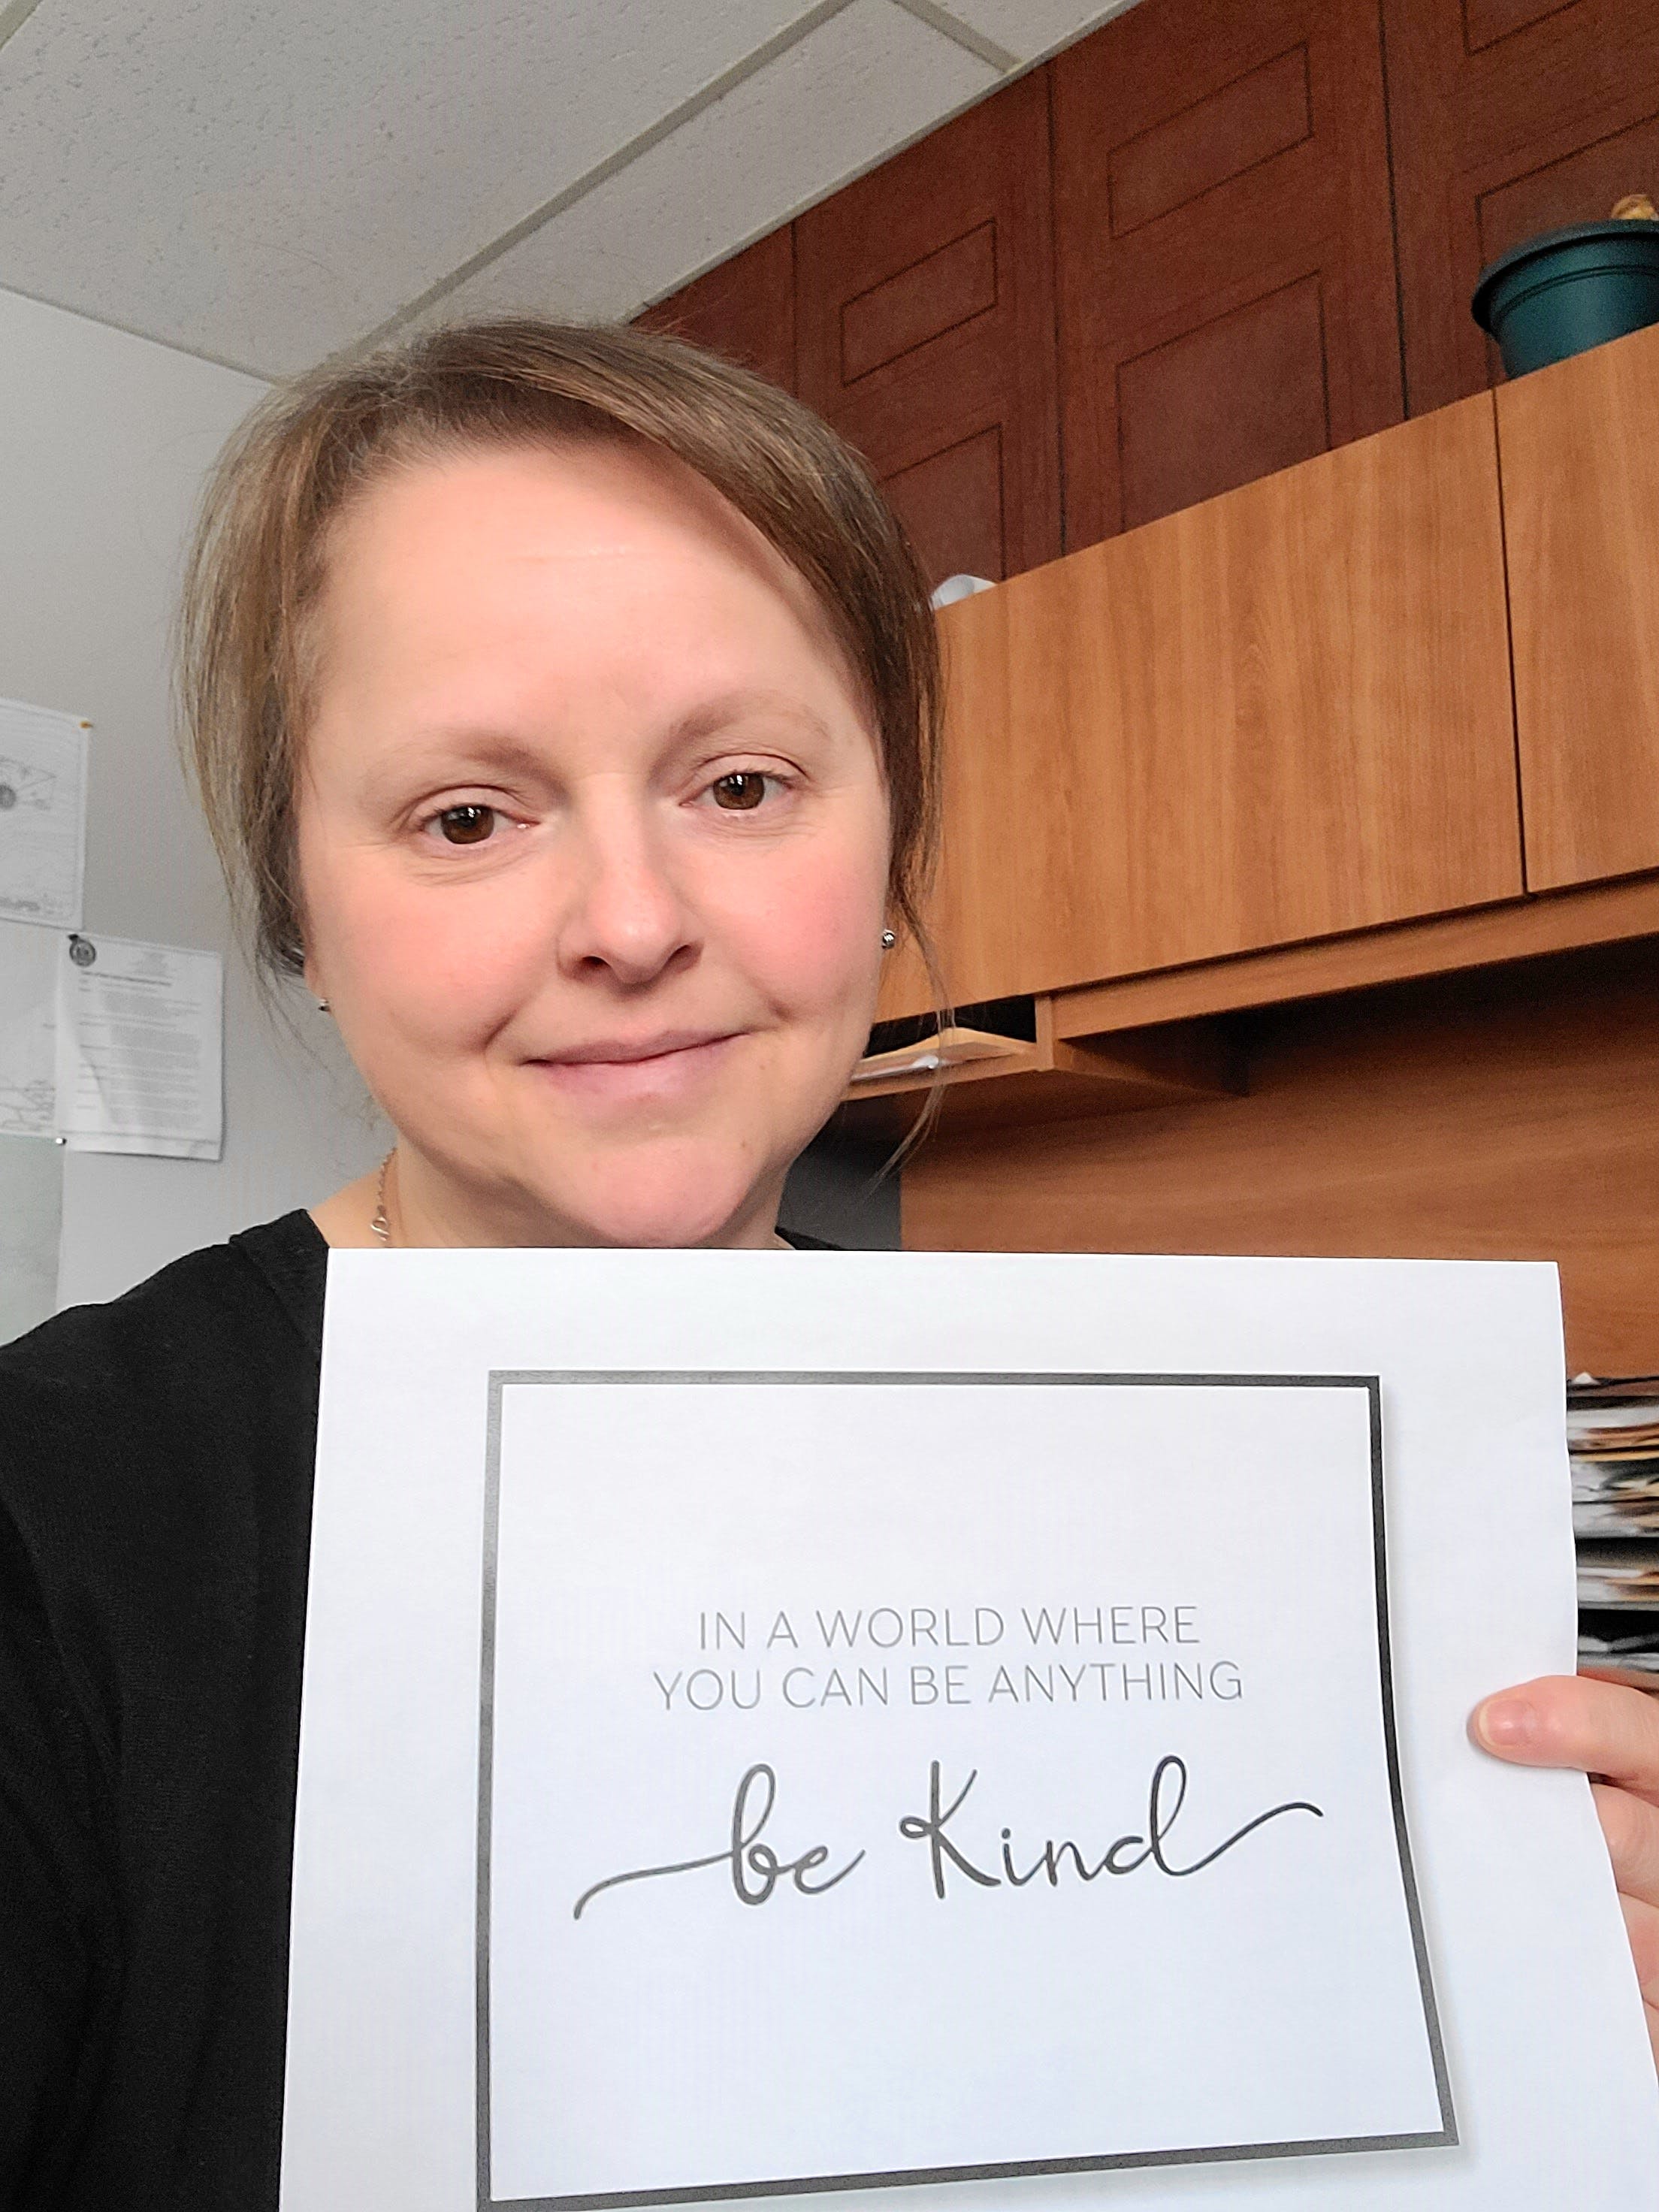 The Town of Baie Verte is holding Random Acts of Kindness Week and is encouraging residents to be kind to each other. Baie Verte chief administrative officer Amanda Humby says a simple gesture can go a long way with someone. Contributed photo